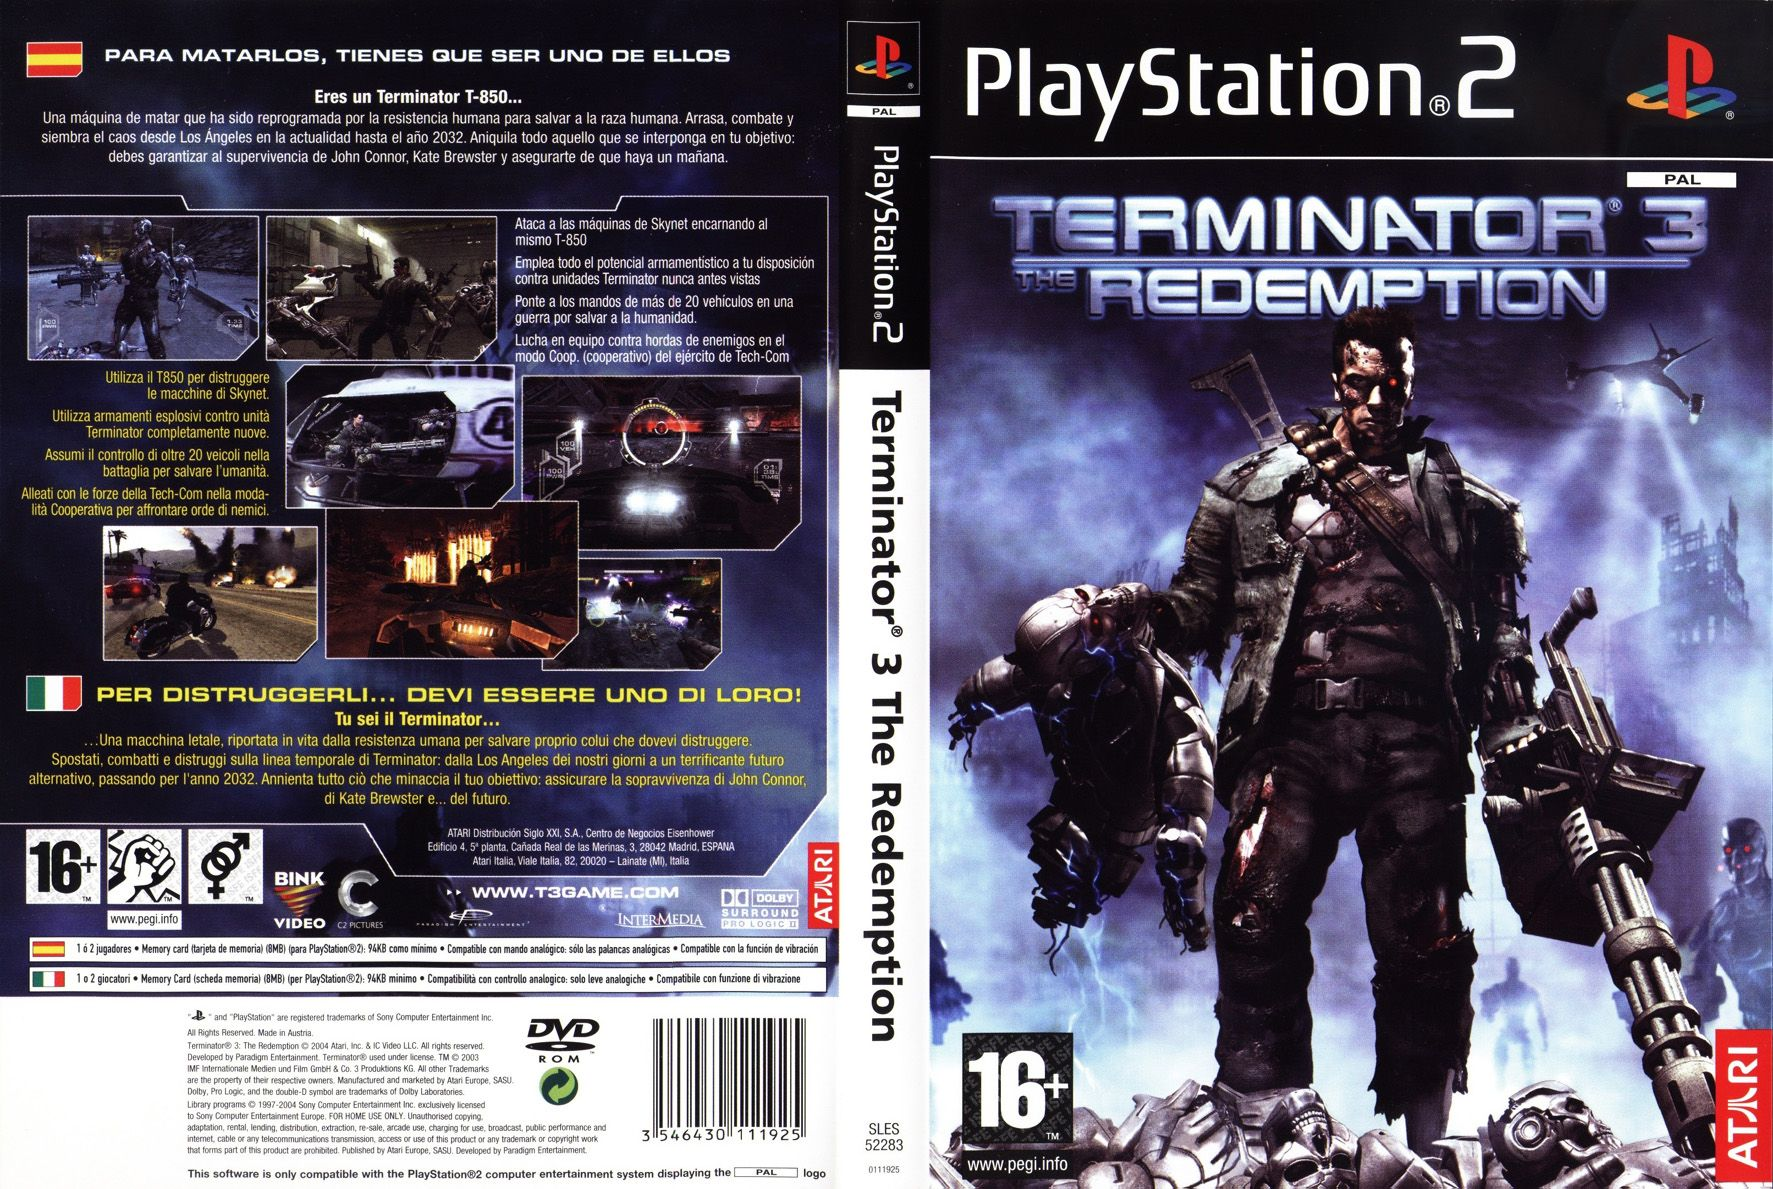 terminator 3 - the redemption (australia) (en,fr,de,es,it) iso < ps2